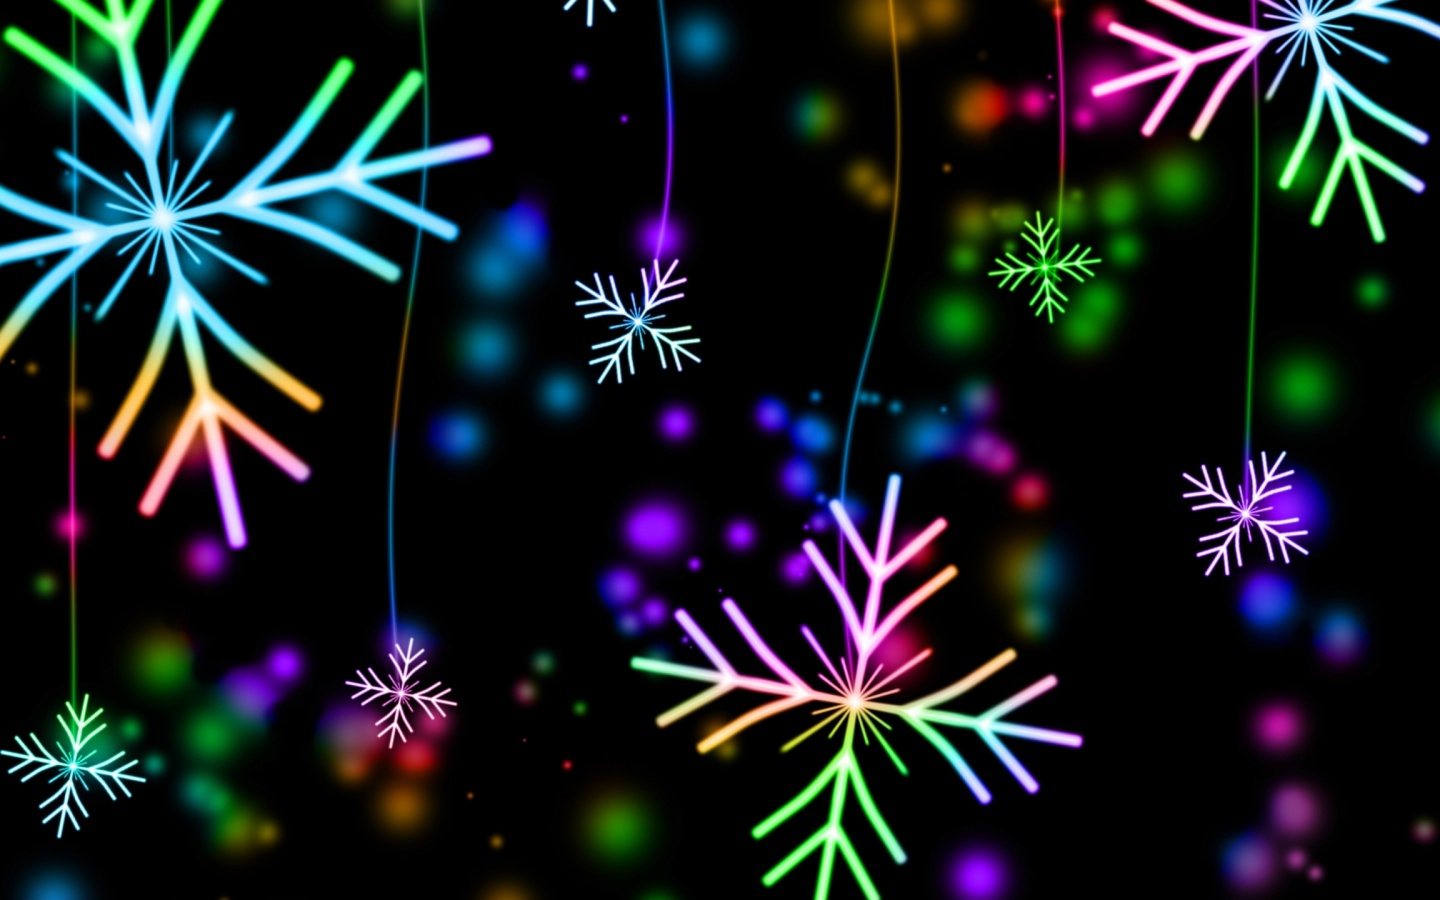 1440x900 snowflakes, colorful, glare